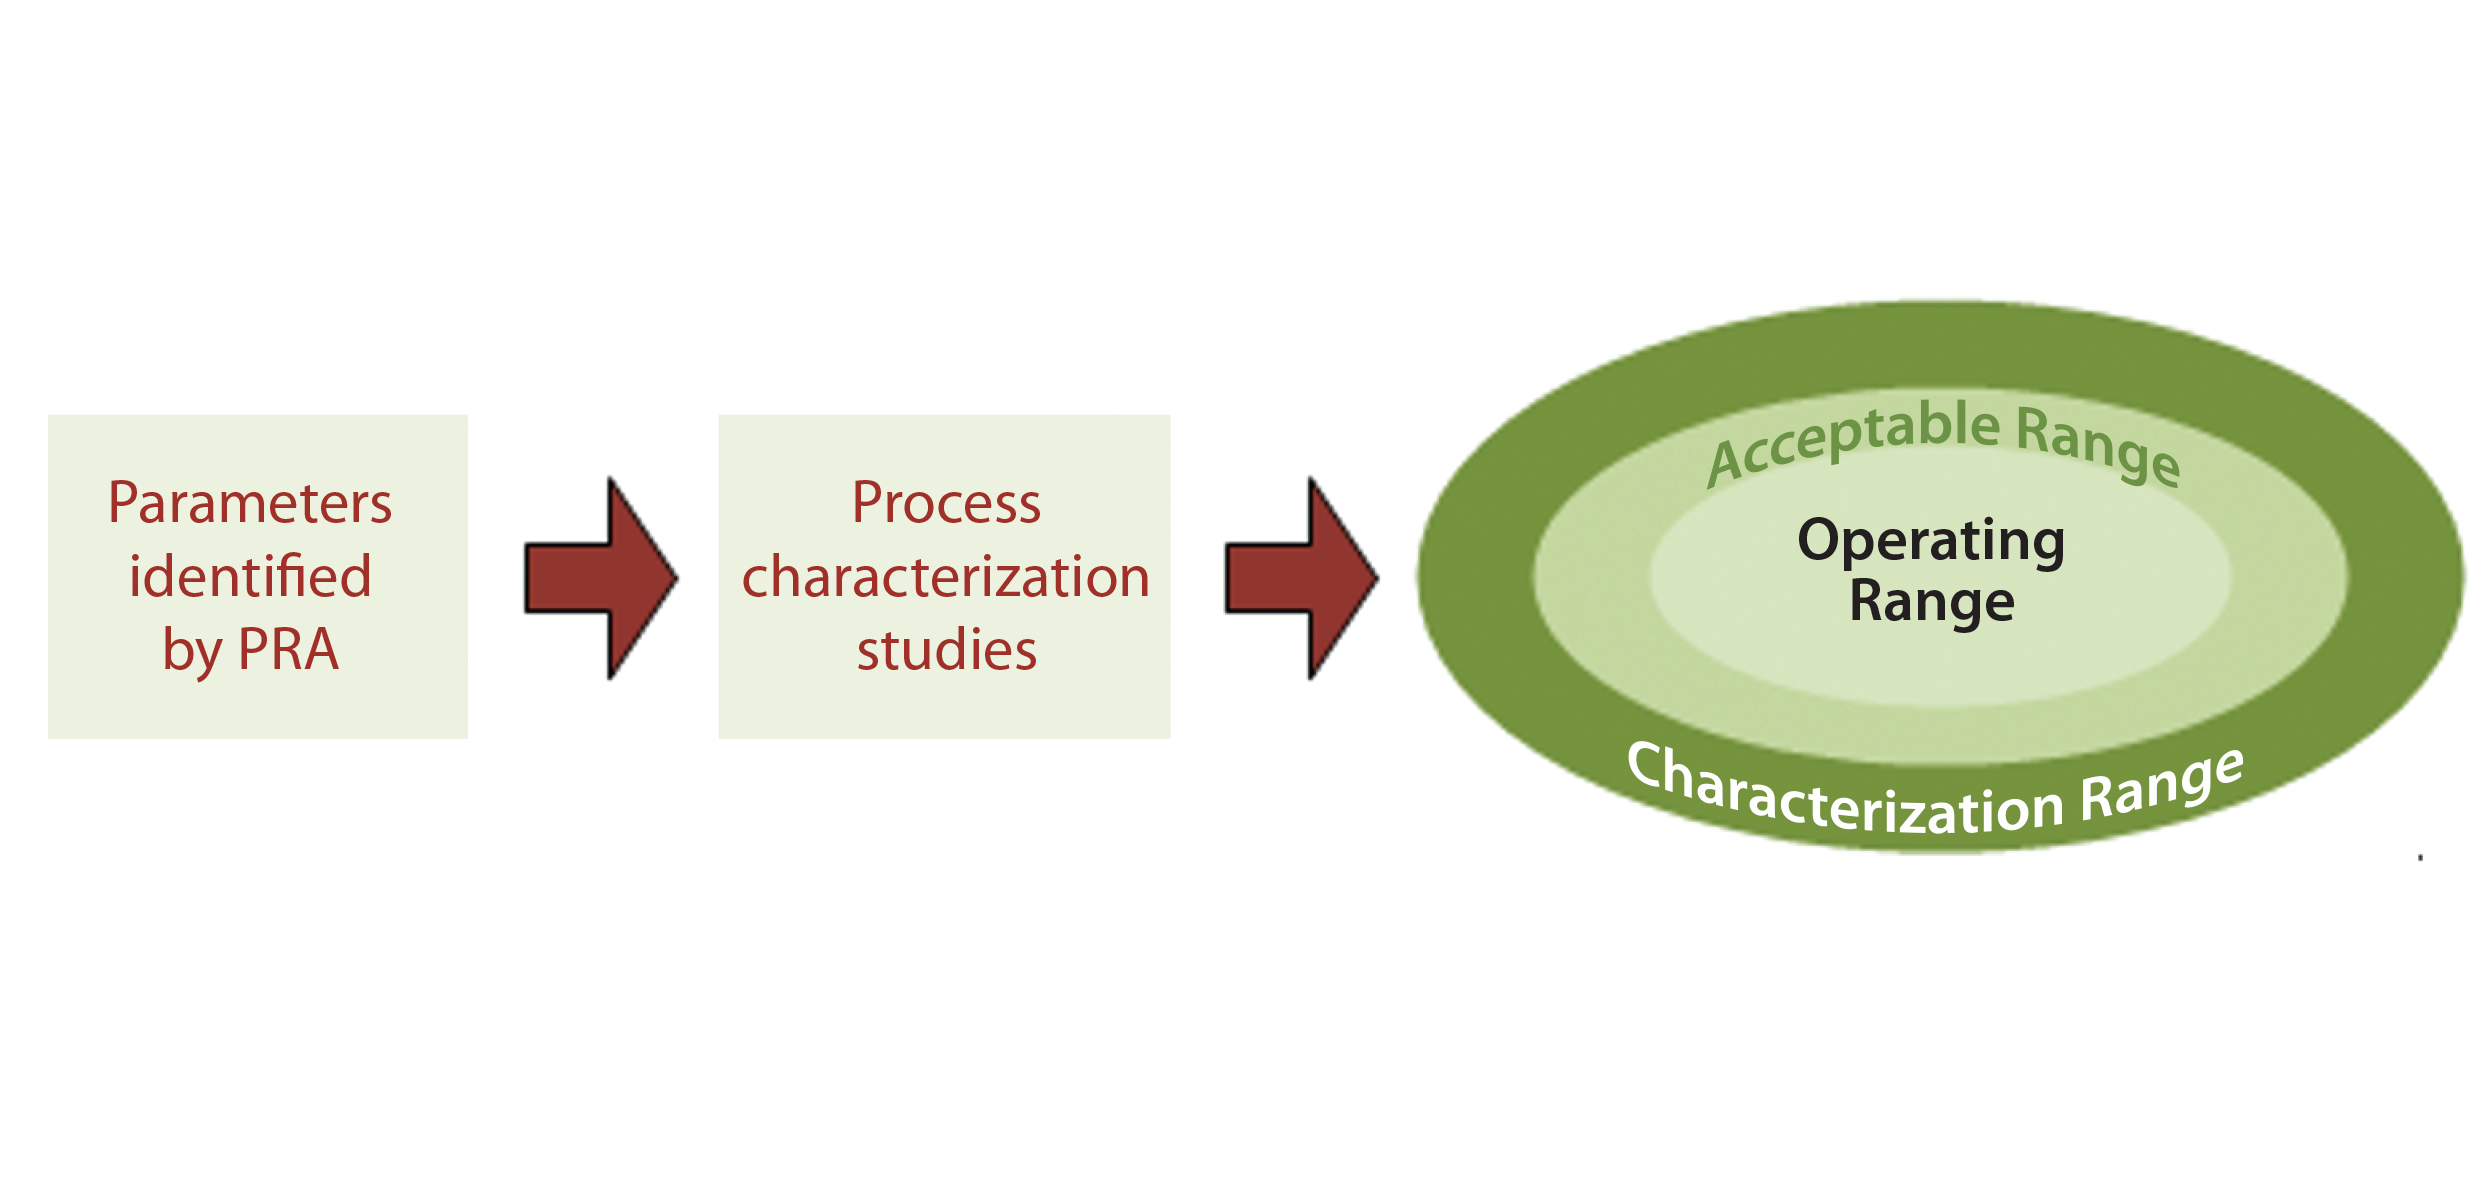 Quality By Design for Monoclonal Antibodies, Part 2: Process